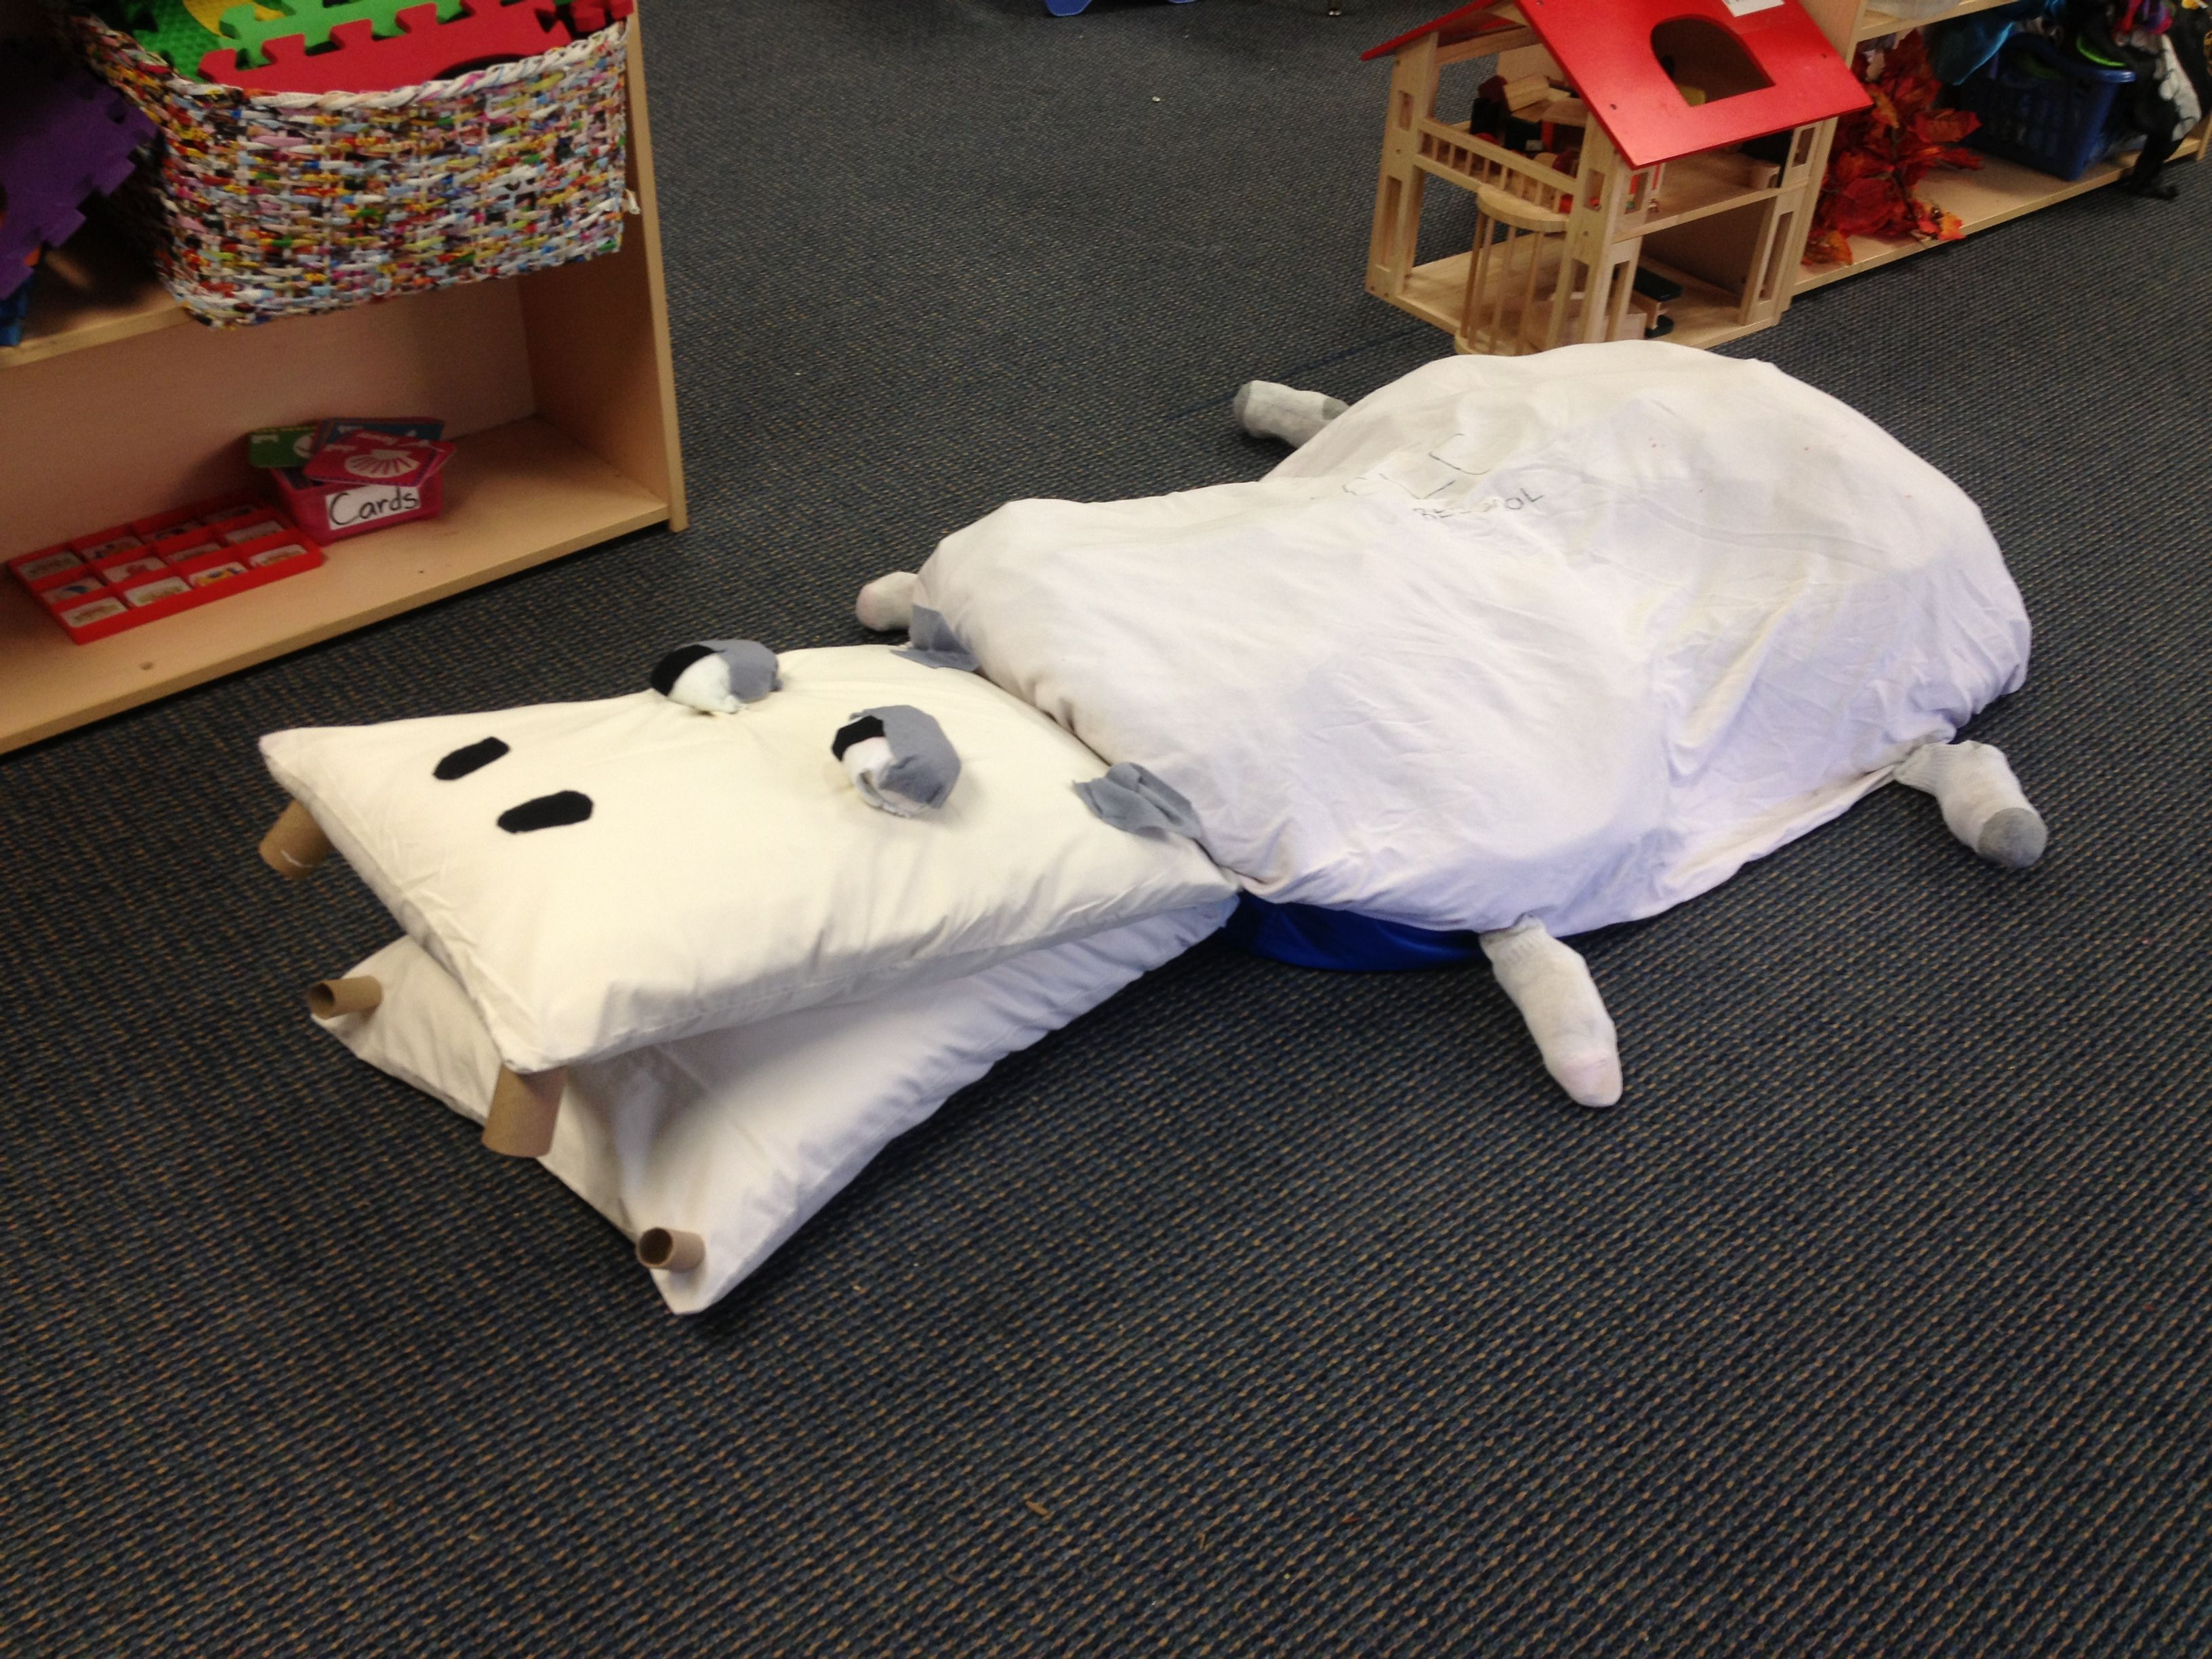 Preschool hippo two pillow cases sewn together and stuffed with